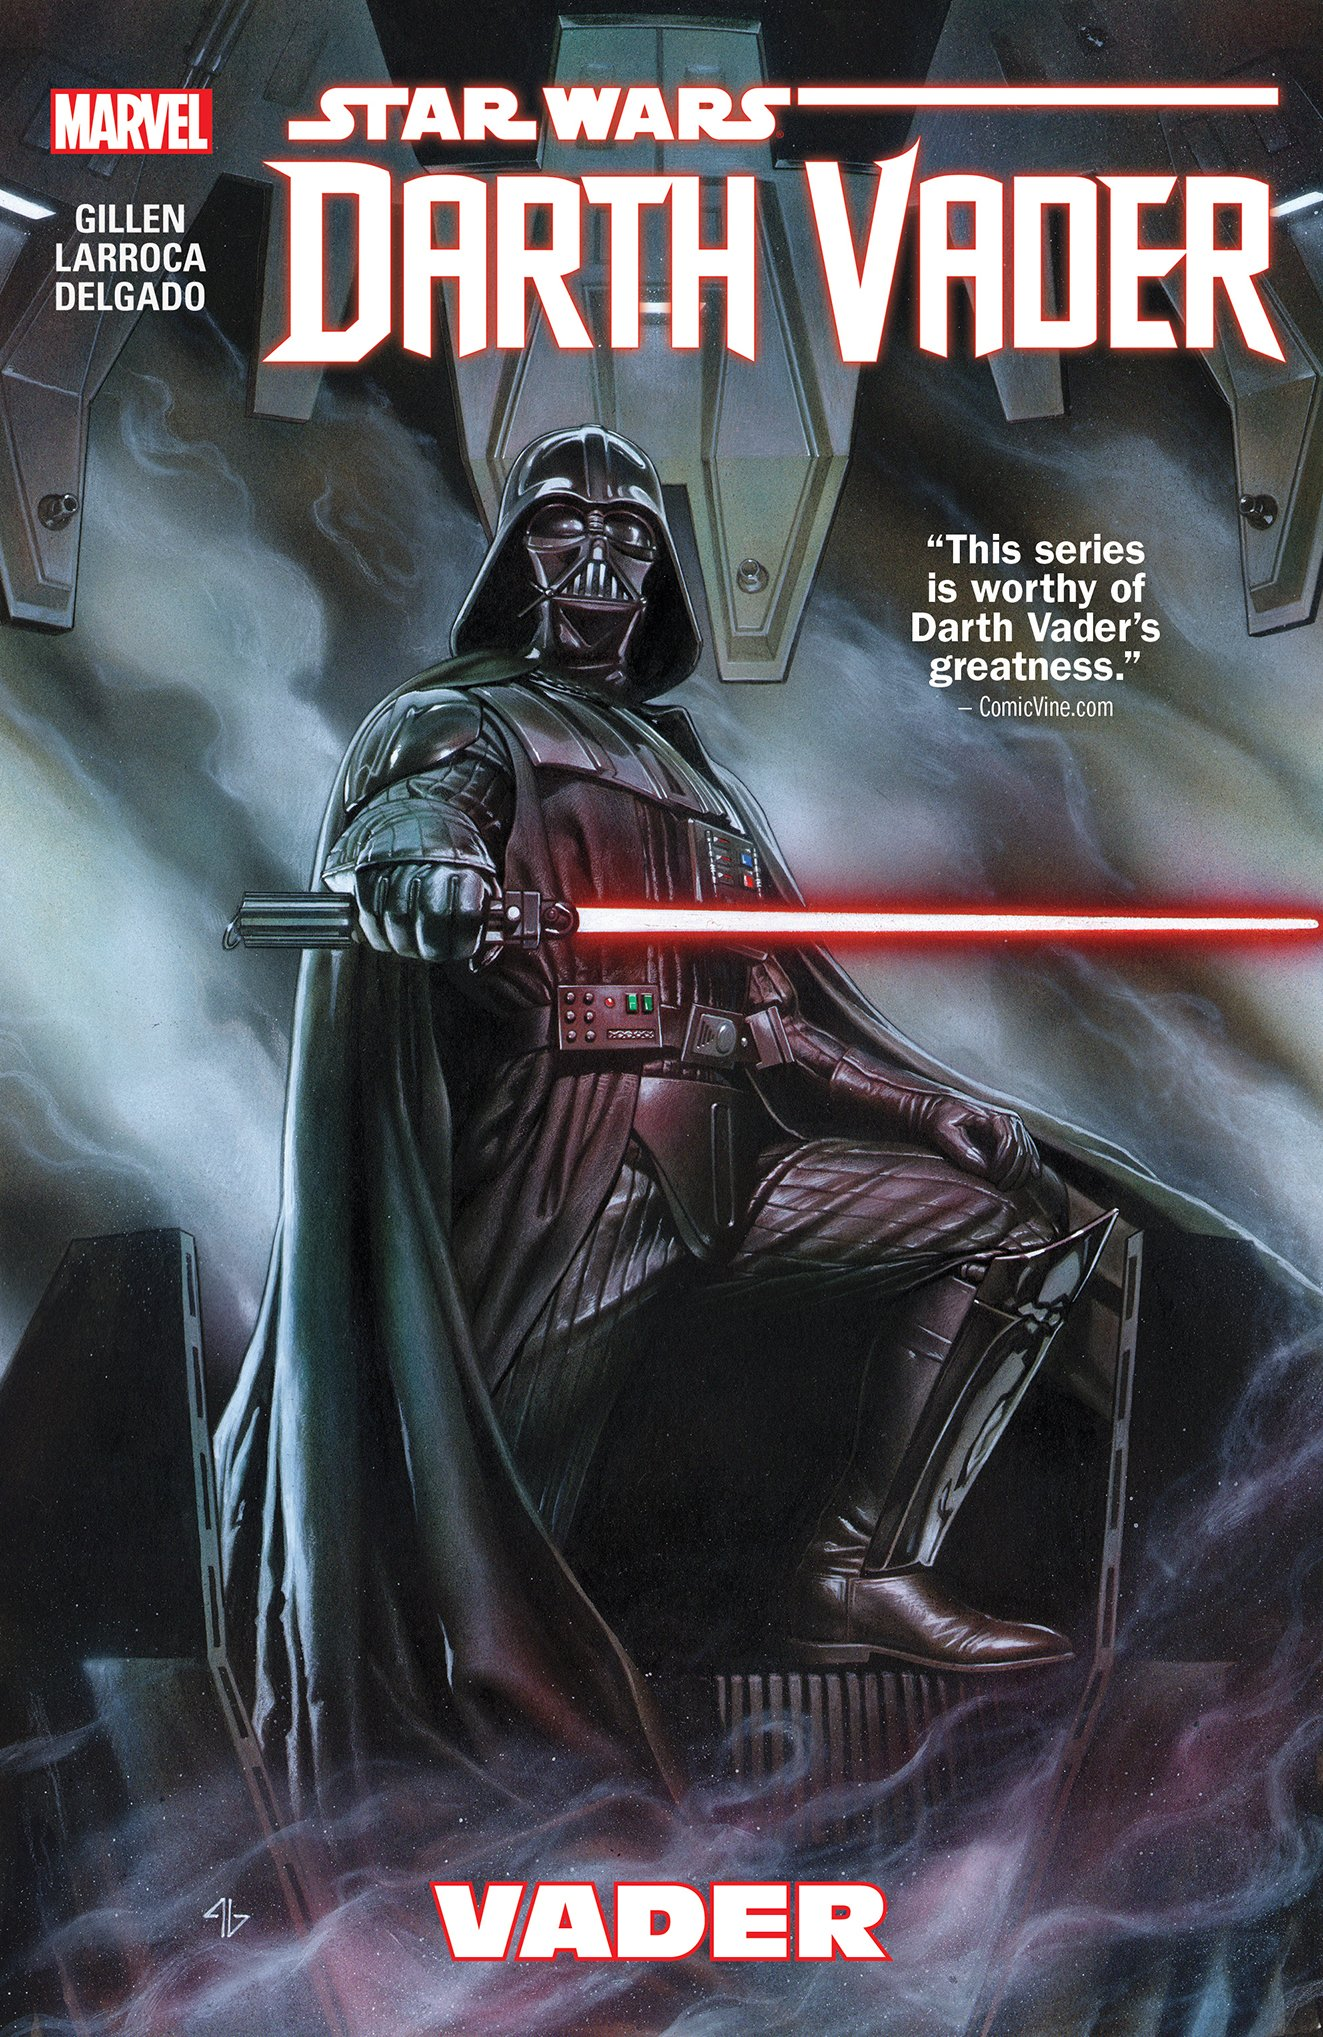 Star Wars: Darth Vader Vol. 1 — Vader